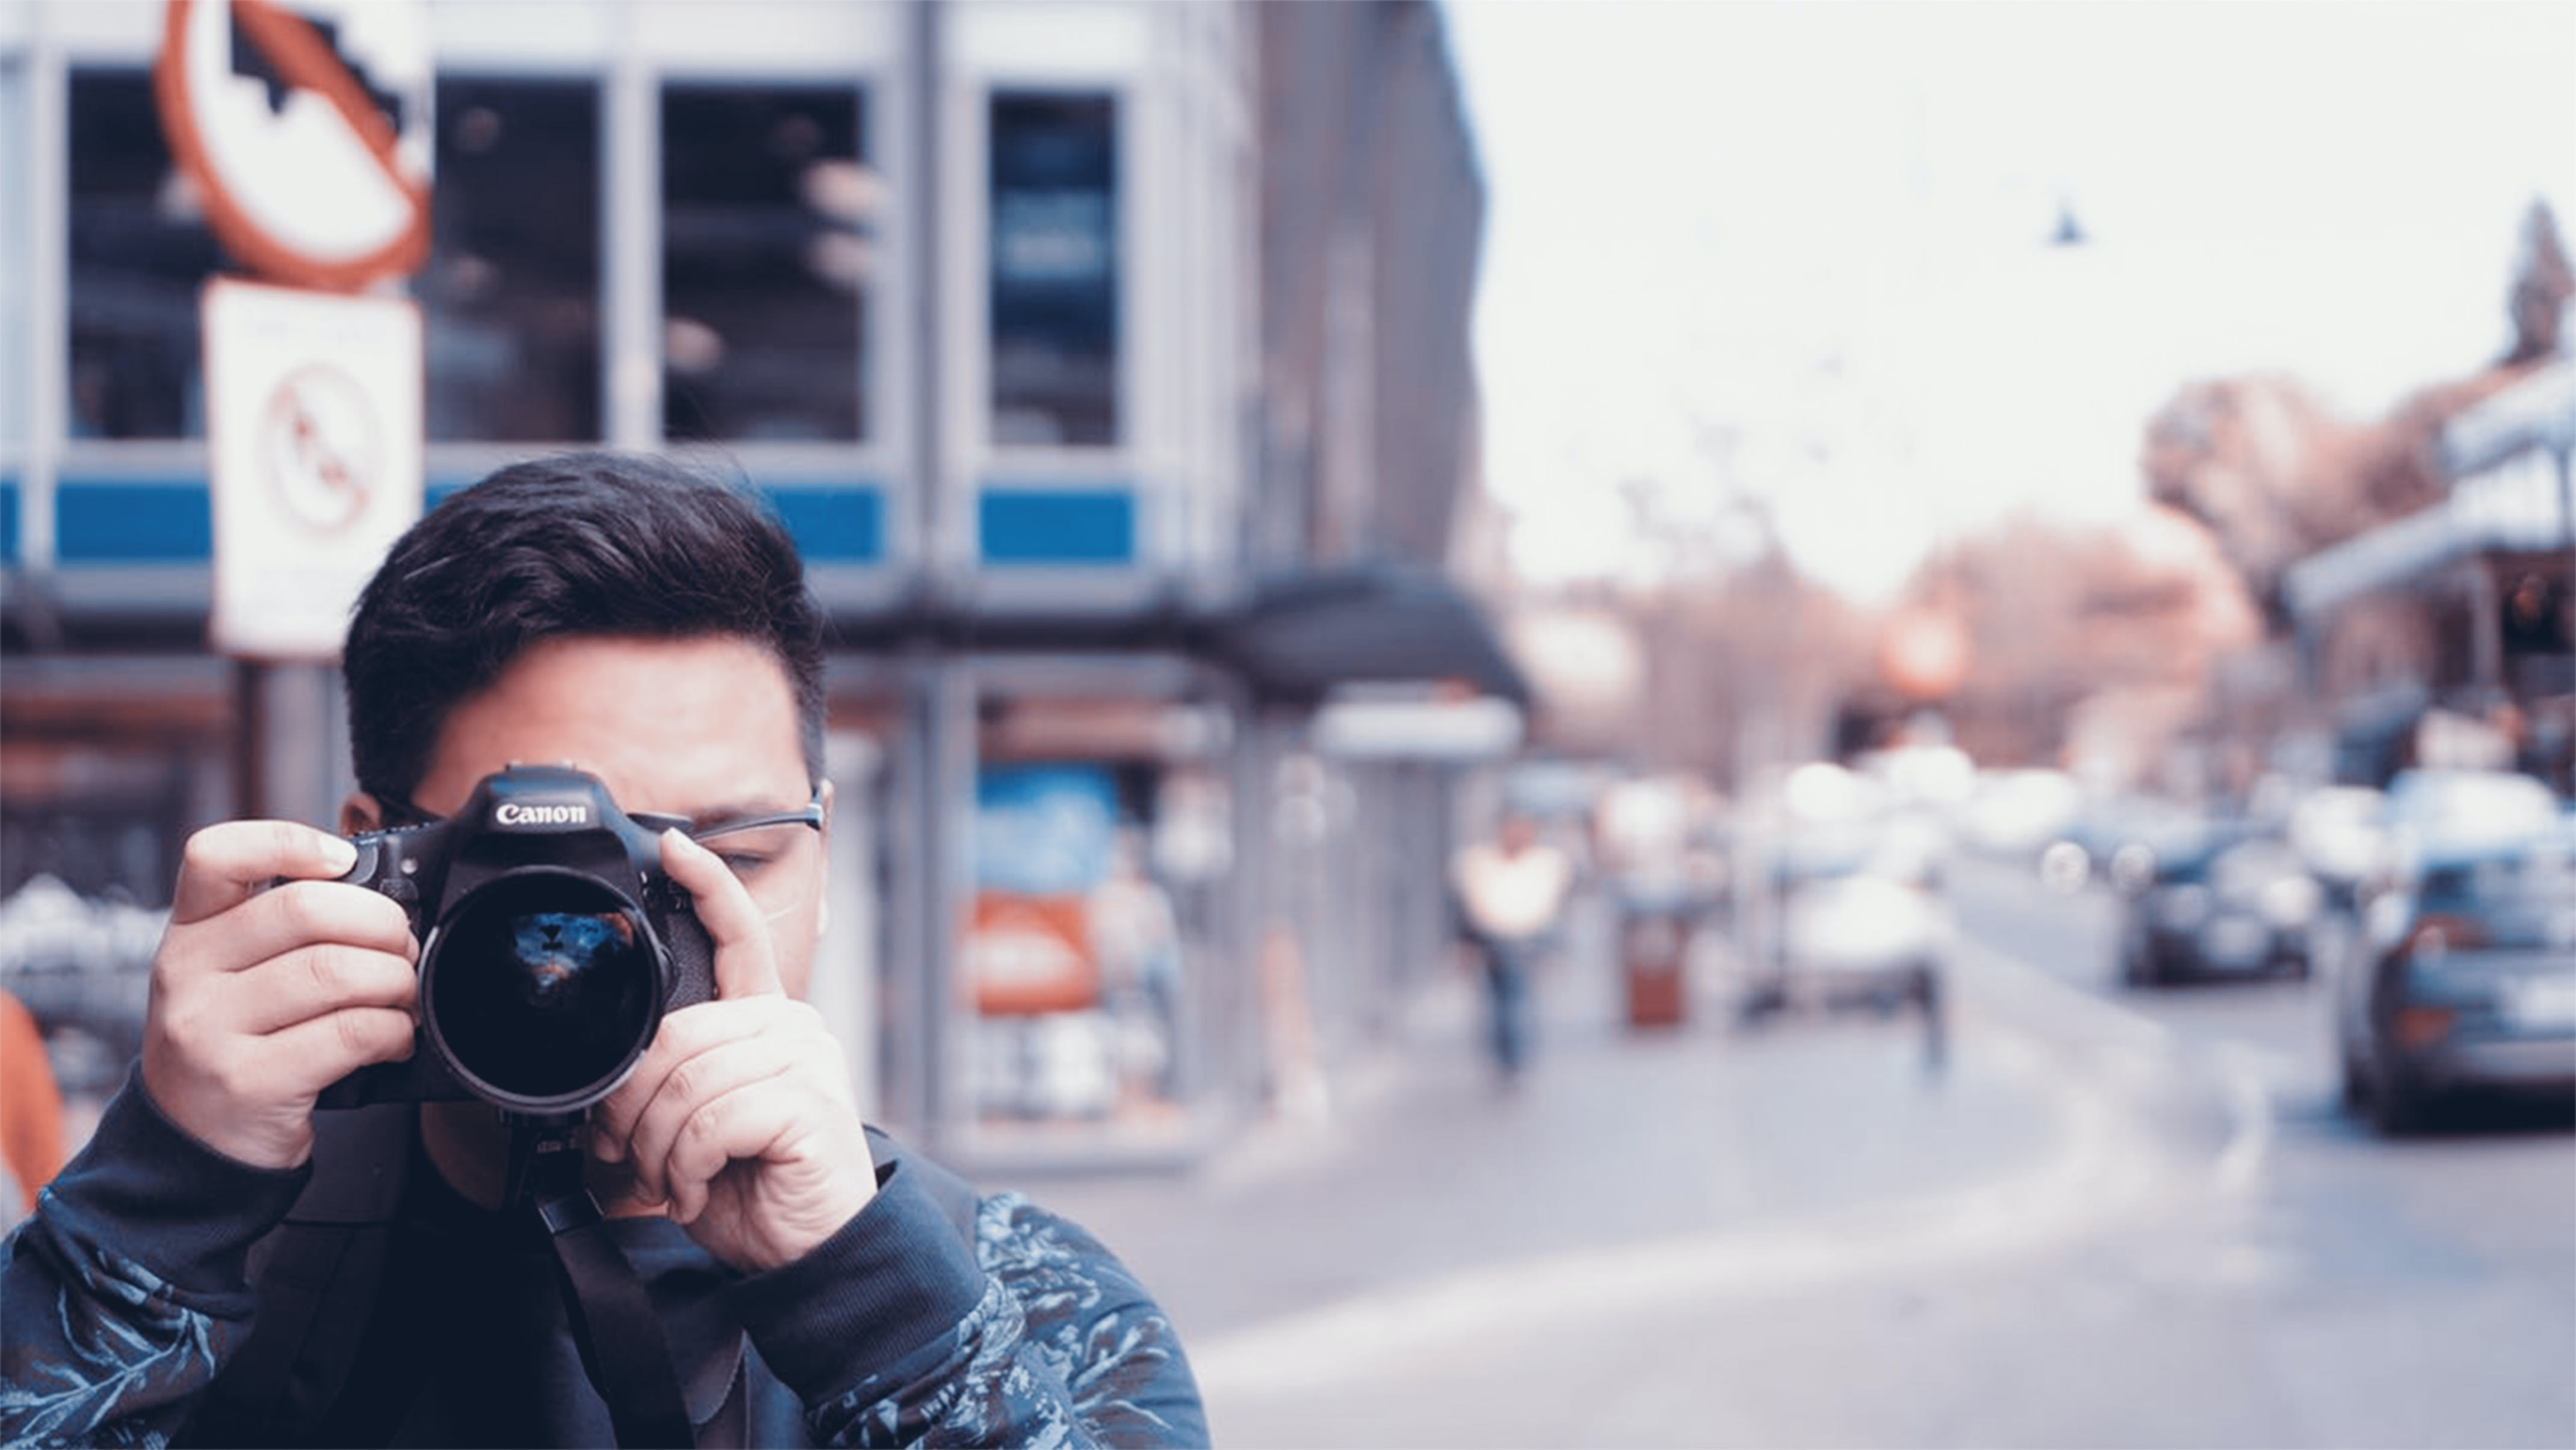 Man Holding A Camera On Busy Street